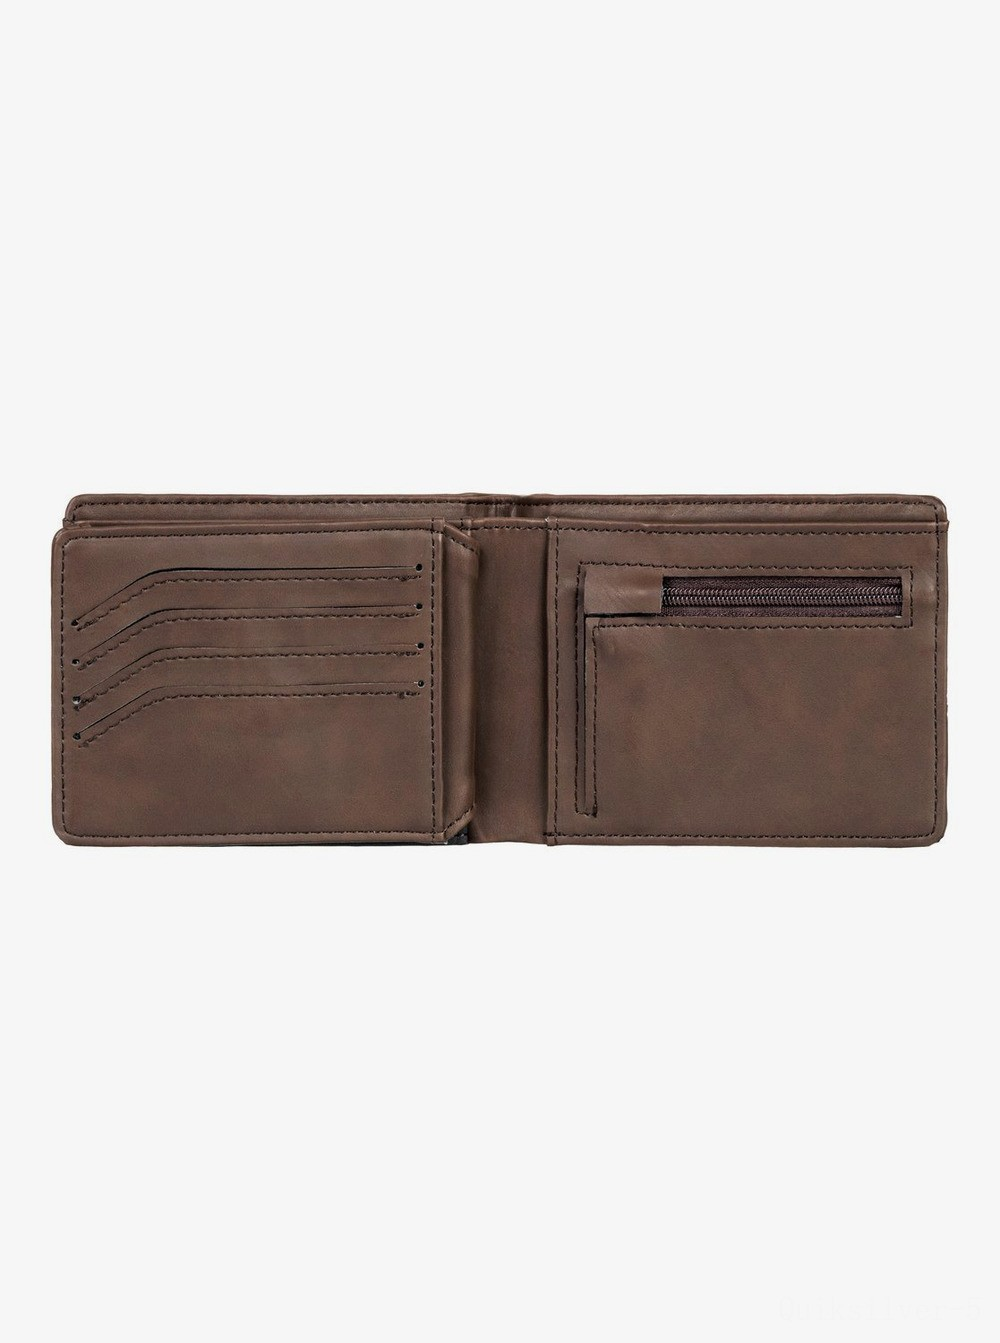 best price nativecountry bi-fold wallet - chocolate brown last chance limited sale